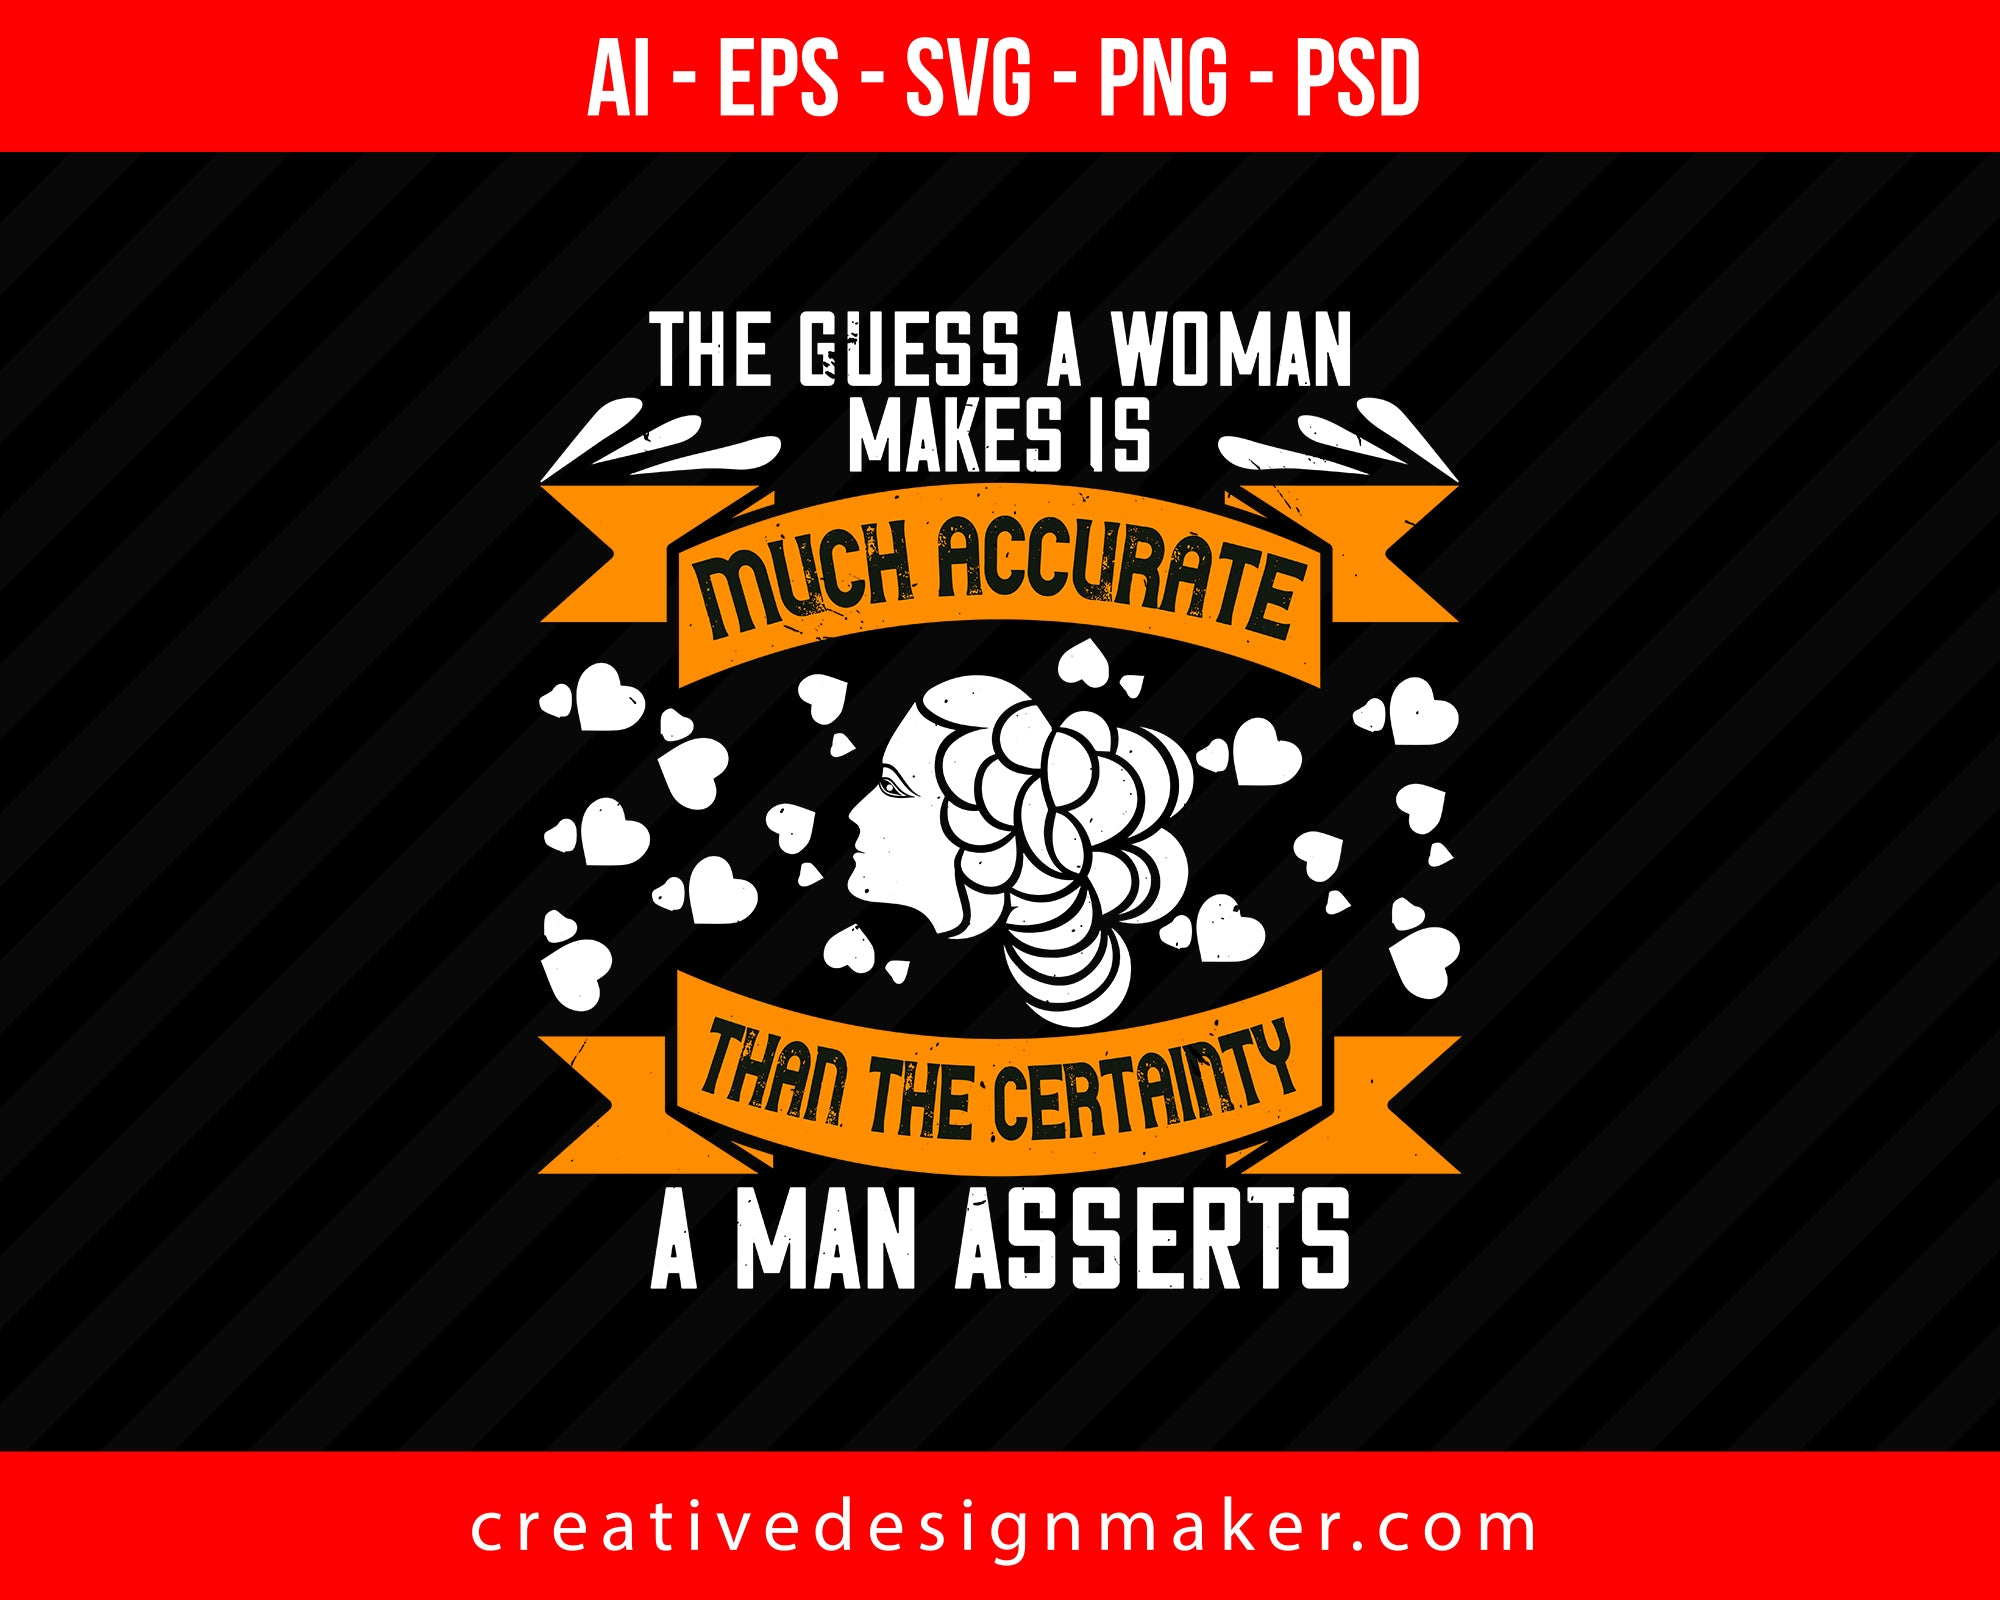 The guess, a woman makes is much accurate Women's Day Print Ready Editable T-Shirt SVG Design!